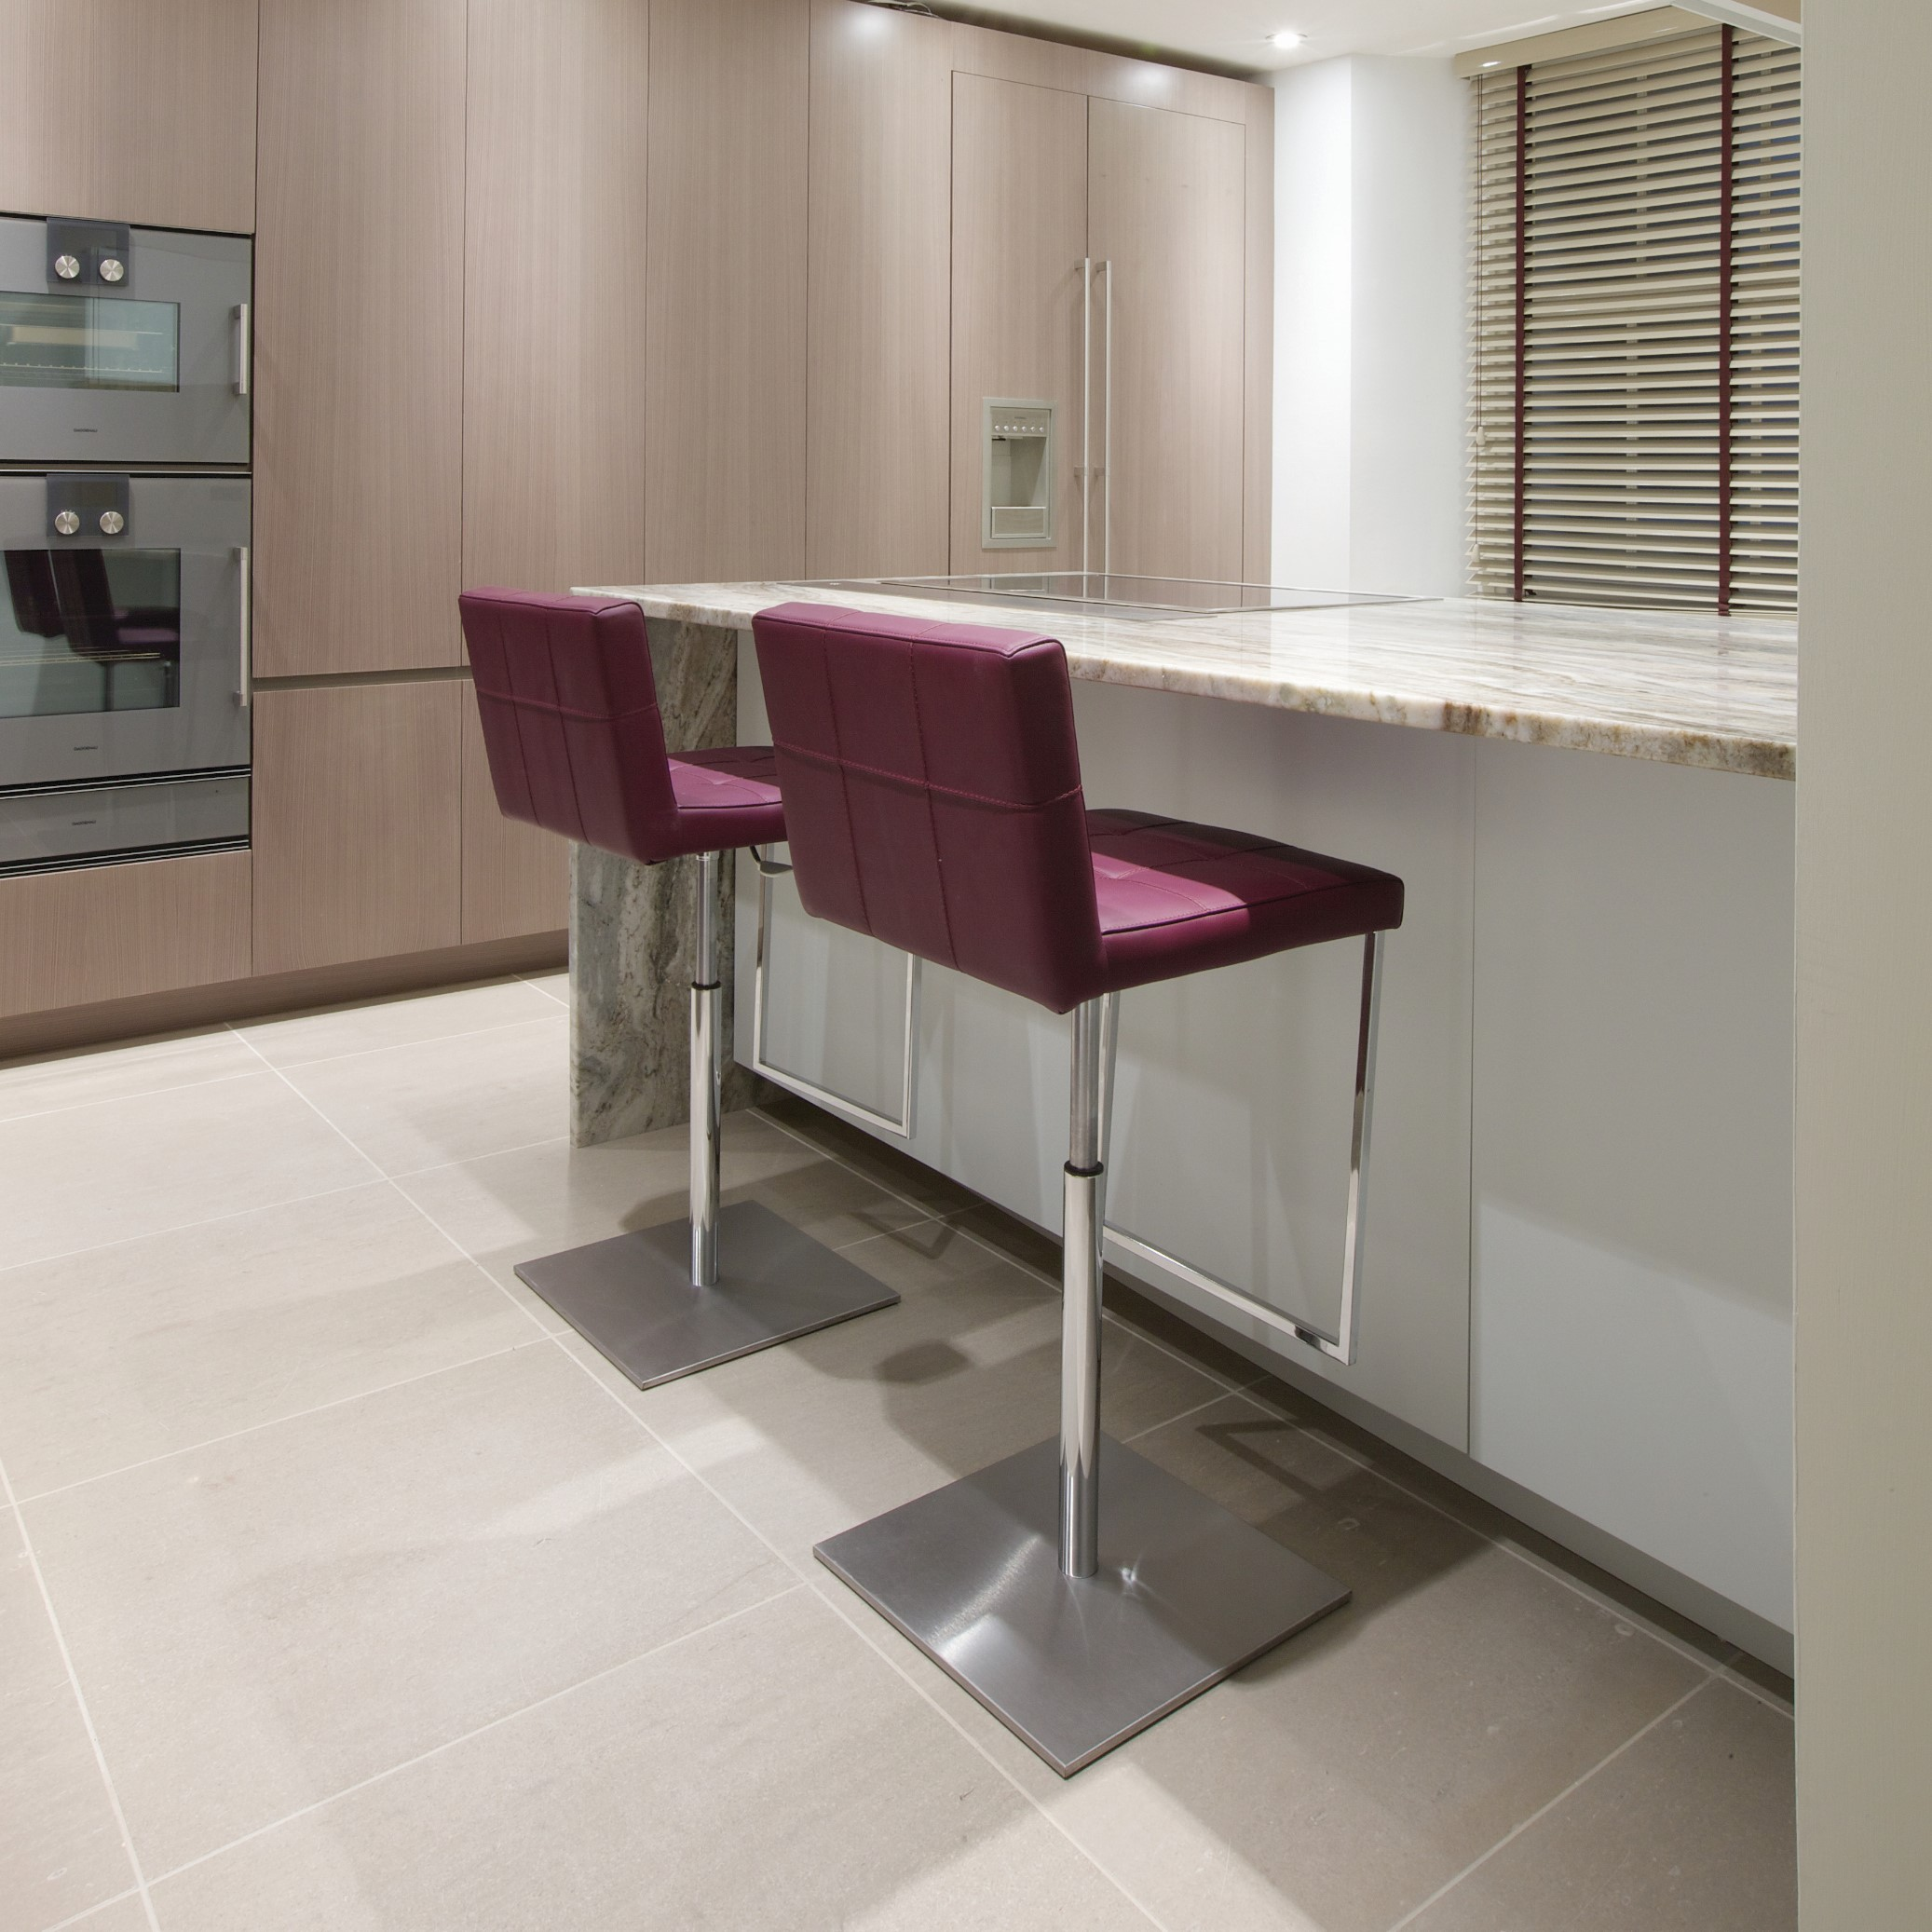 Kitchen Tiles Edinburgh: Ca' Pietra Limestone, Modena (honed)